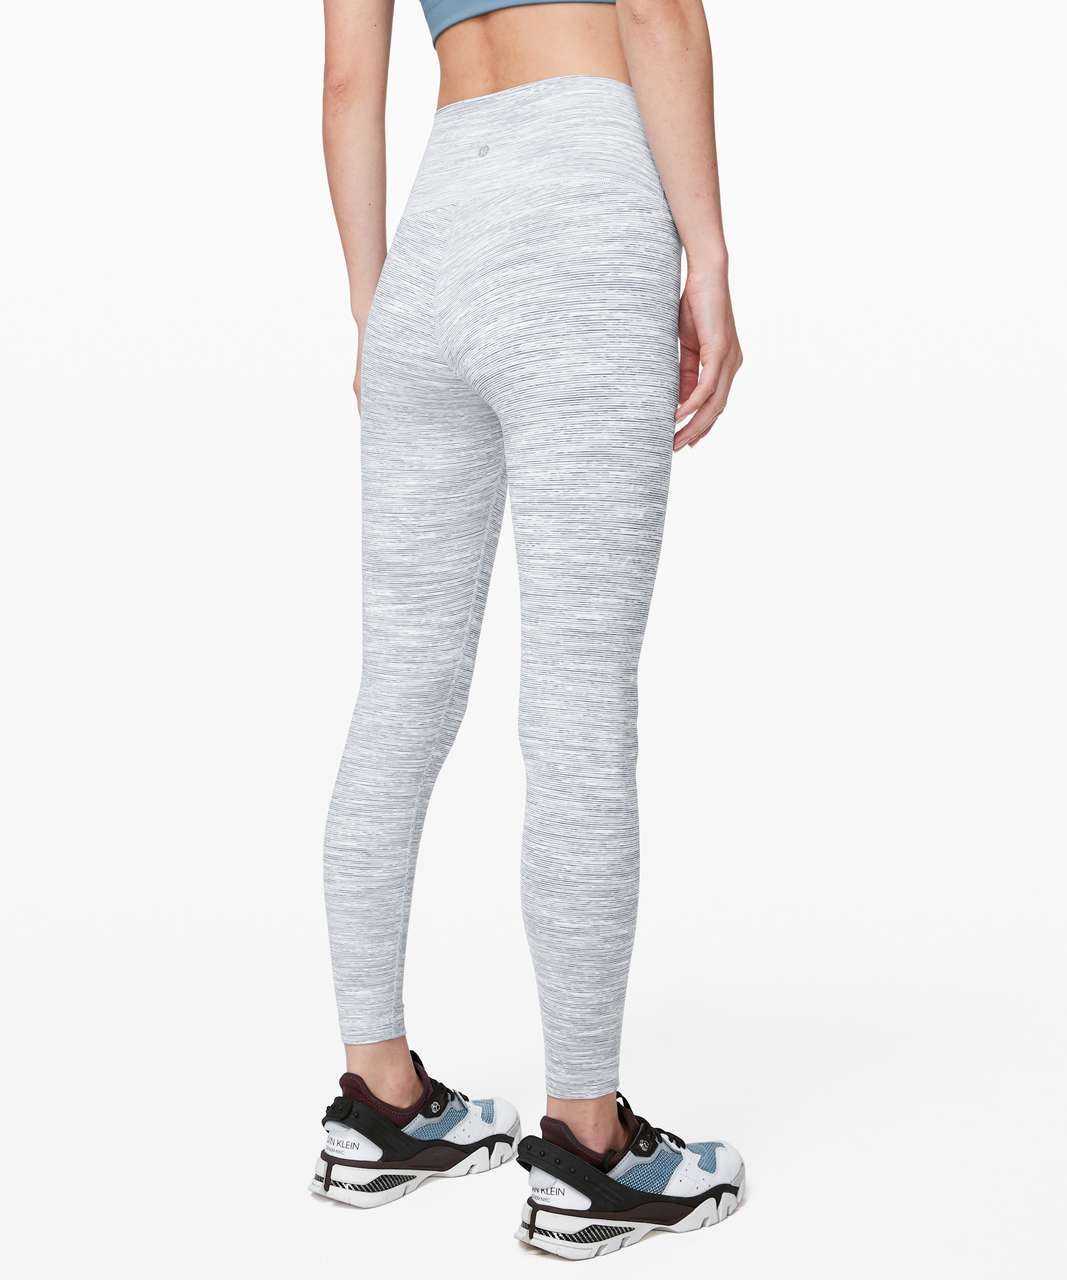 """Lululemon Wunder Under High-Rise Tight 25"""" *Luxtreme - Wee Are From Space Sheer Blue Chambray"""